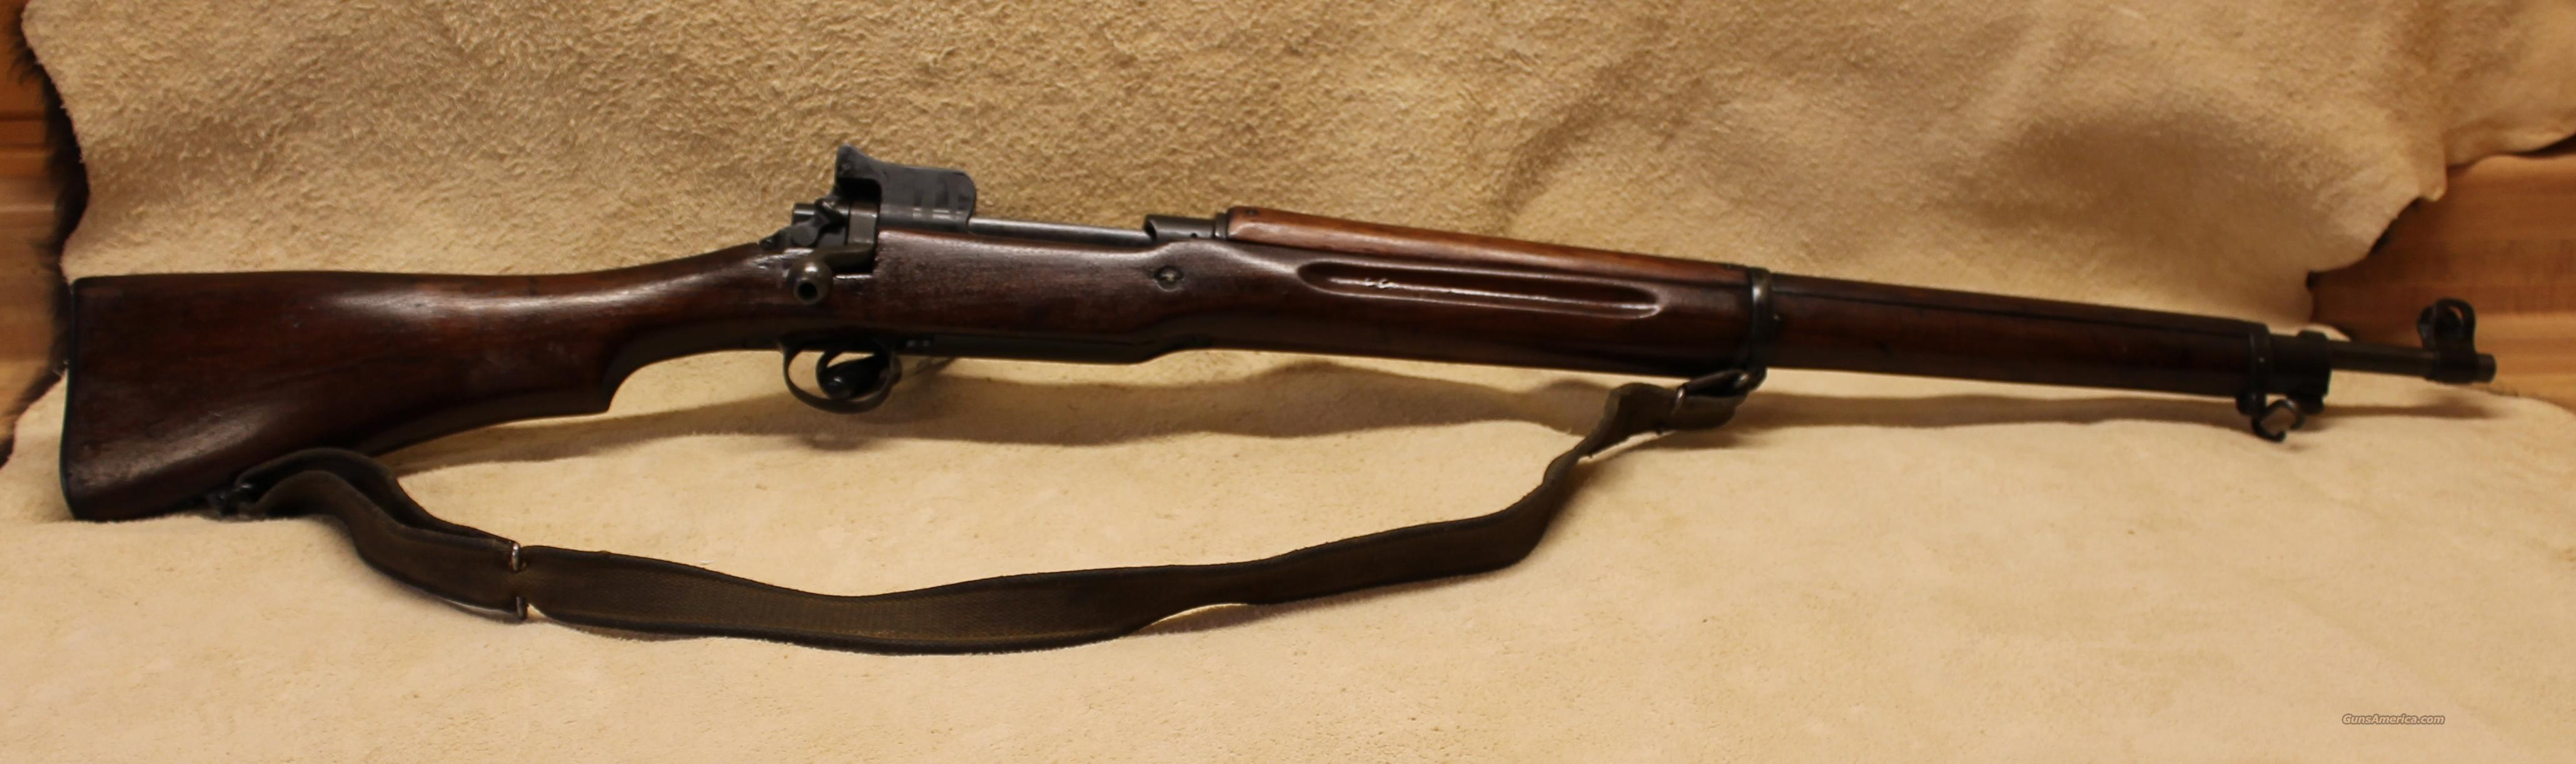 "U.S. MODEL 1917 ""ENFIELD"" RIFLE  Guns > Rifles > Enfield Rifle"